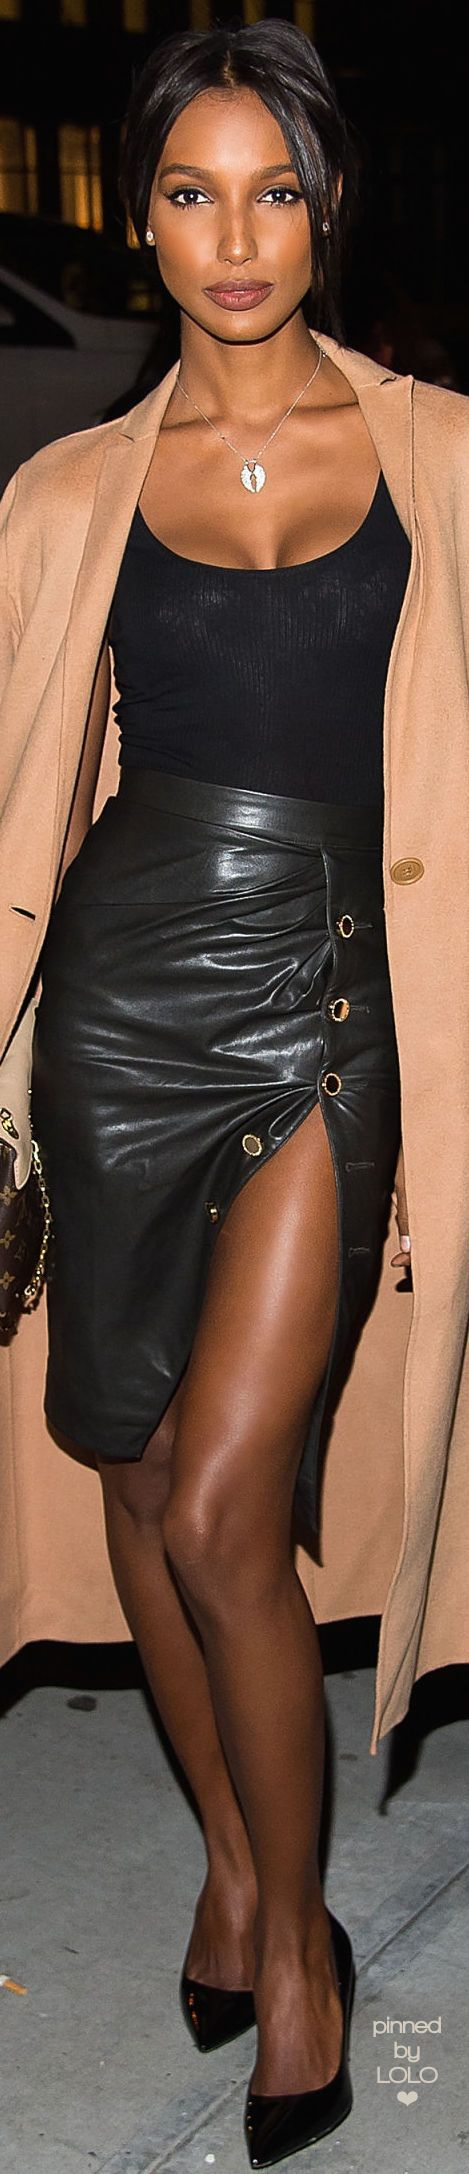 Jasmine Tookes Victoria Secret Viewing Party | LOLO❤︎ Found on .. http://wonderpiel.com/